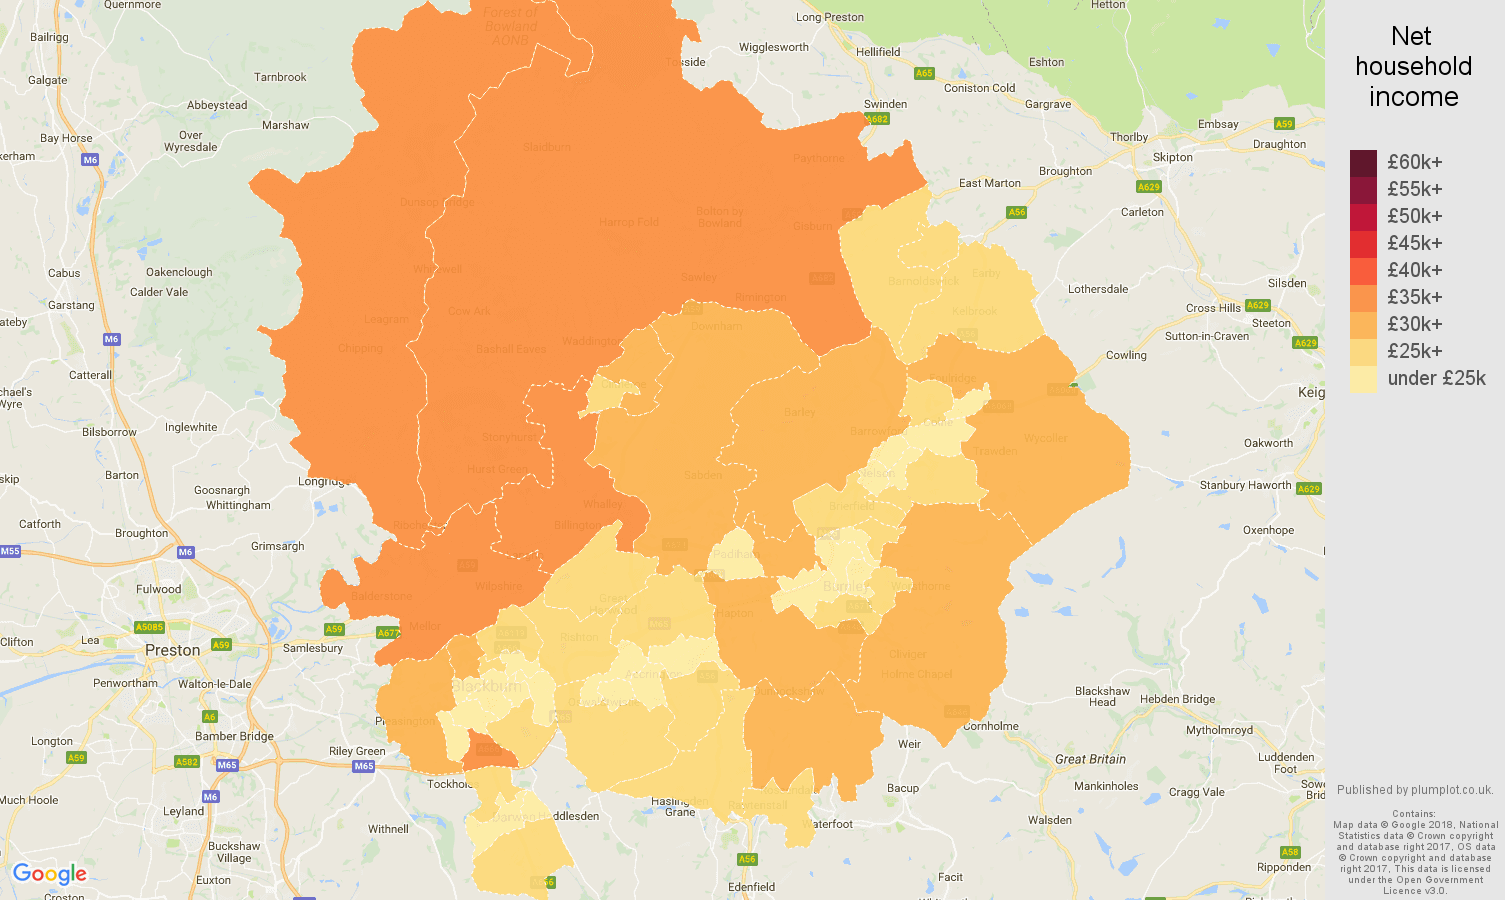 Blackburn net household income map